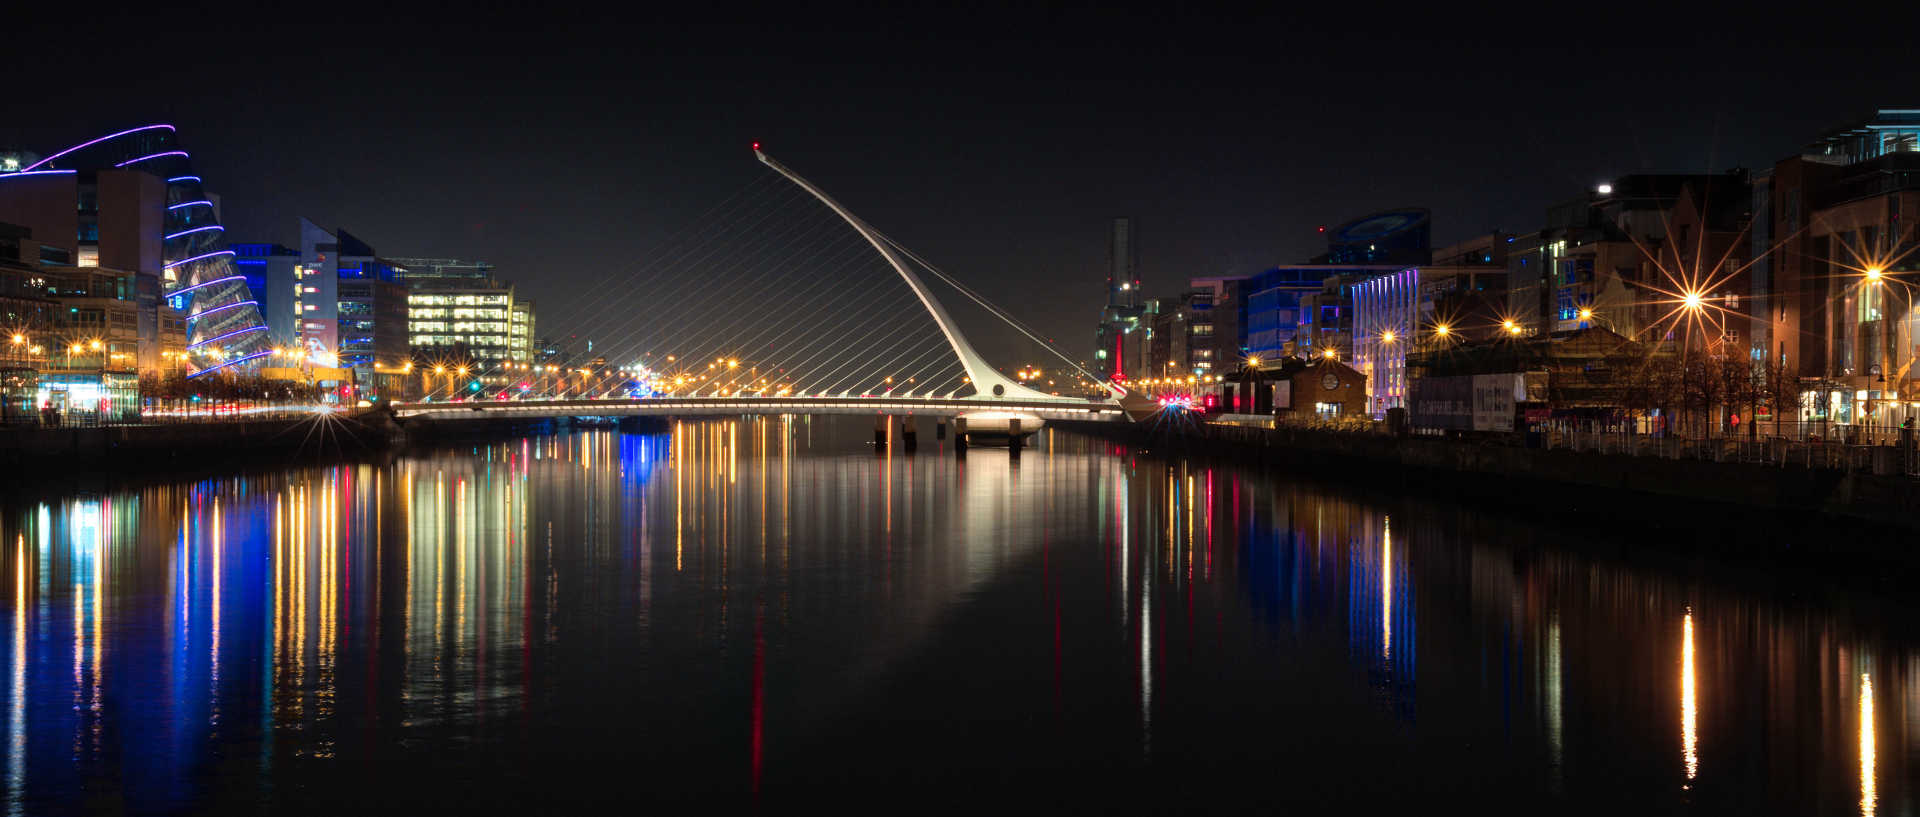 Serviced apartments in Dublin at night